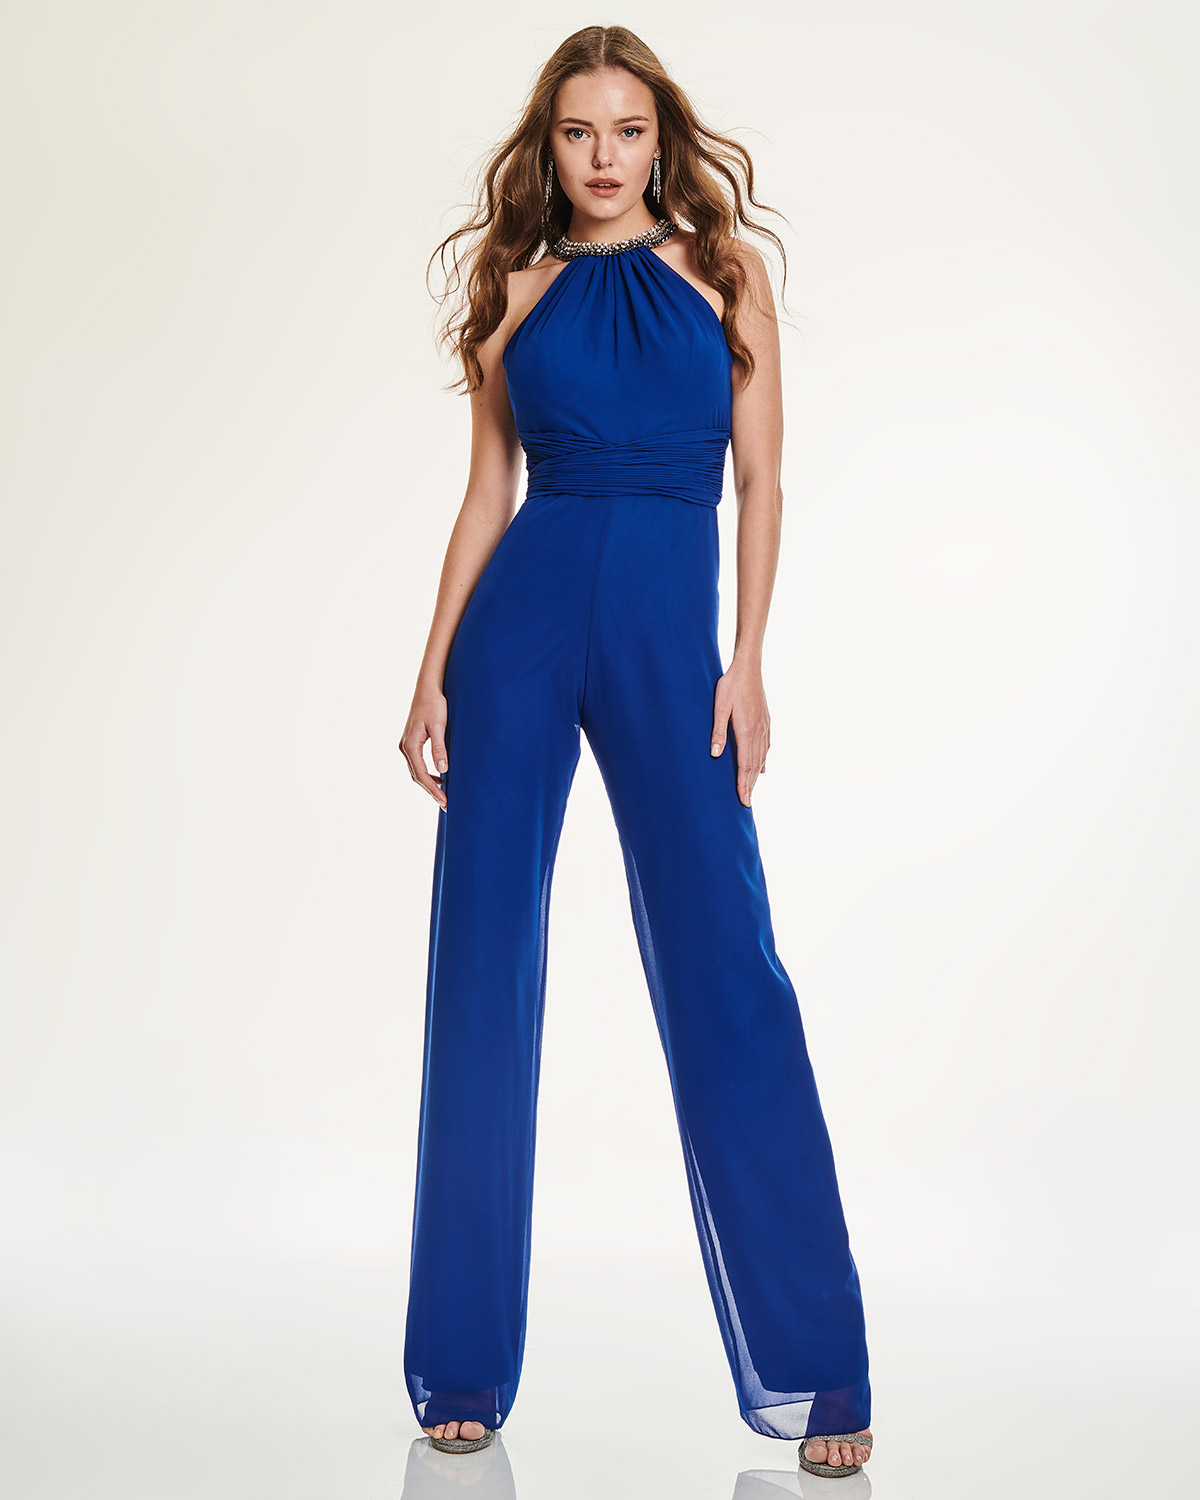 Cocktail jumpsuit with open back